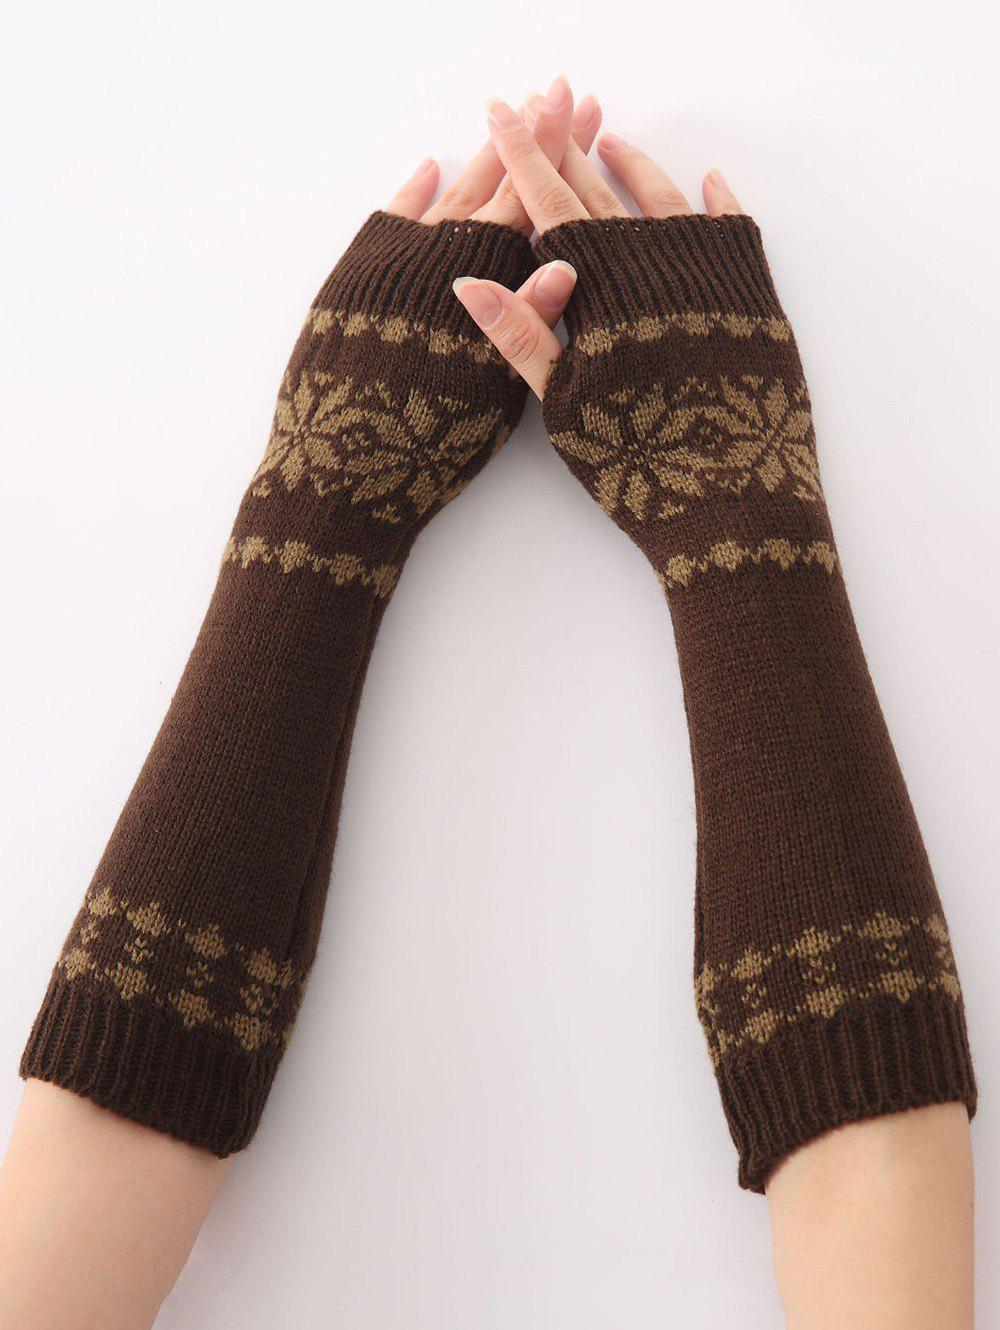 Christmas Winter Warm Snow Floral Crochet Knit Arm Warmers